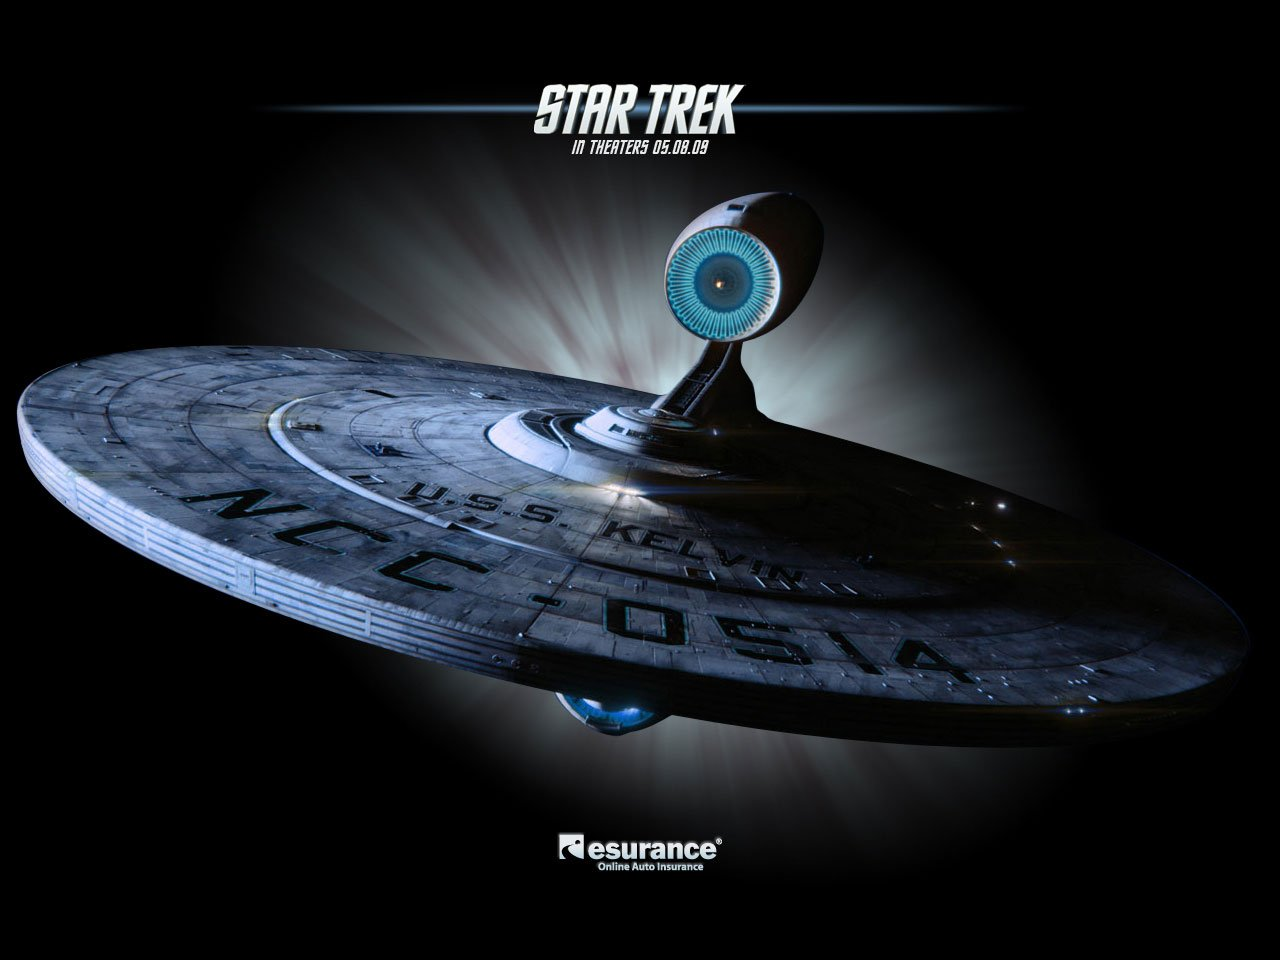 1280x960 Star Trek 2009 Movie Wallpapers JoBlocom 1280x960